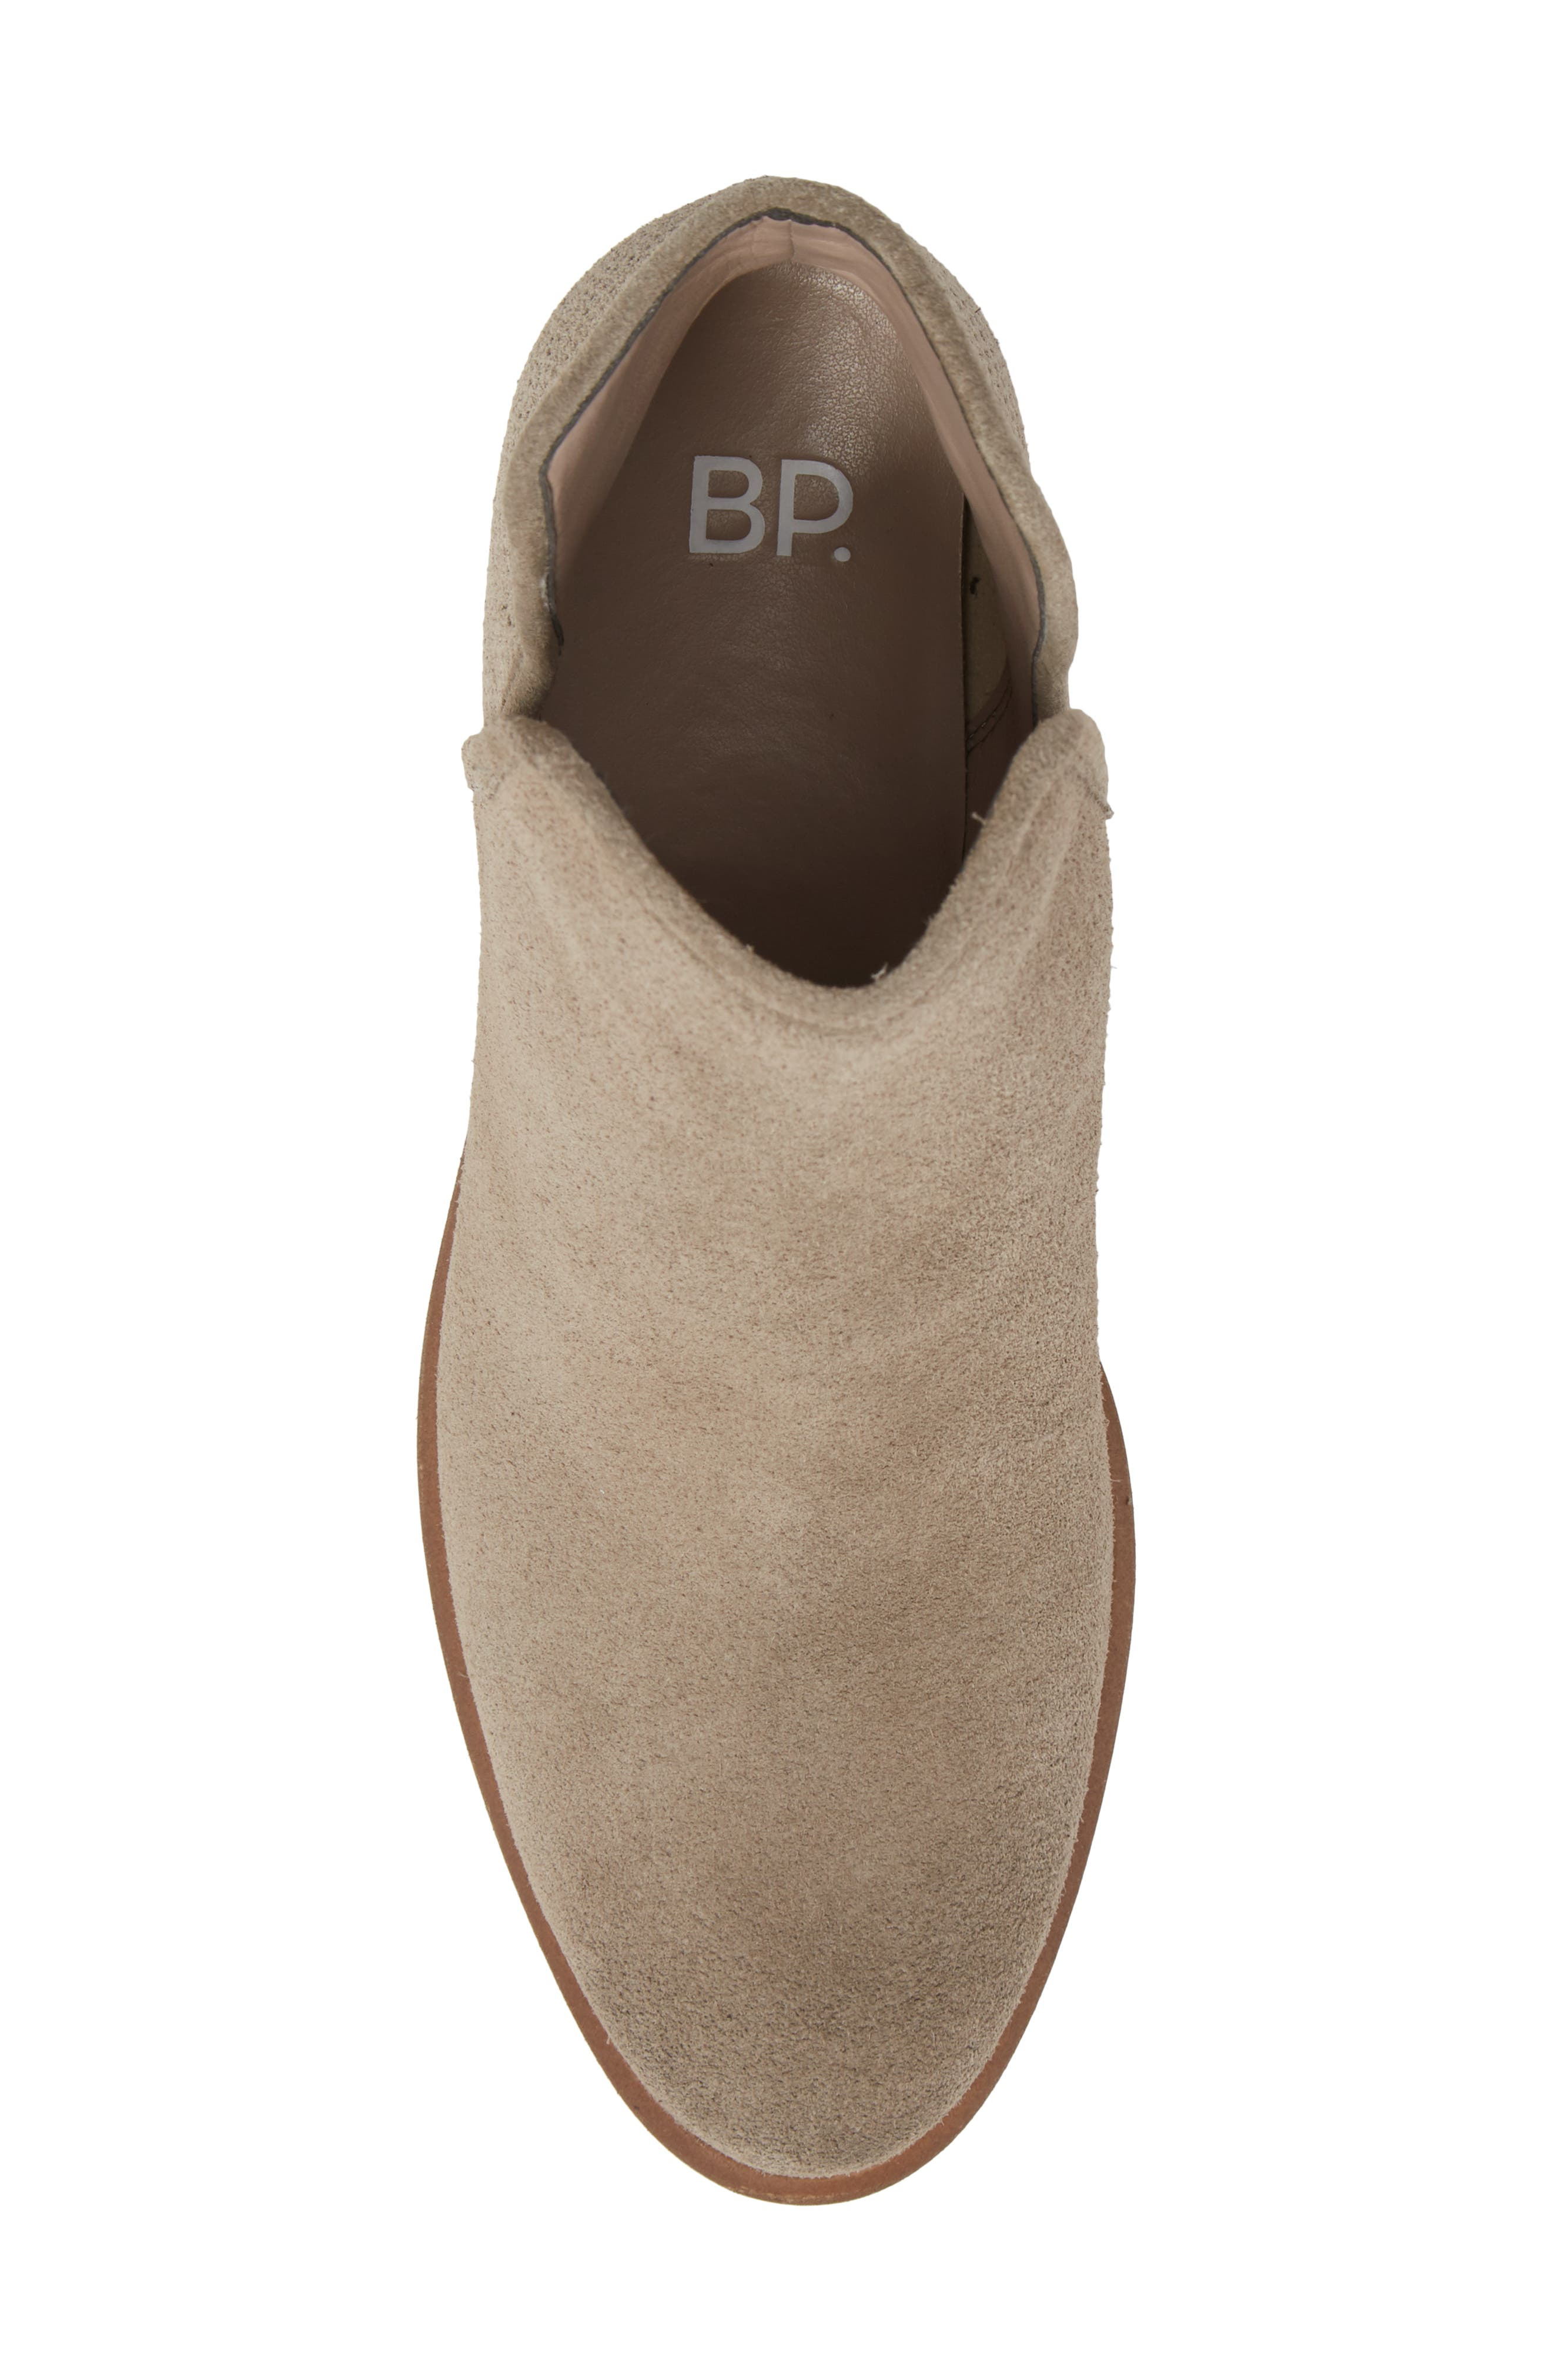 ,                             BP Barris Block Heel Bootie,                             Alternate thumbnail 37, color,                             043